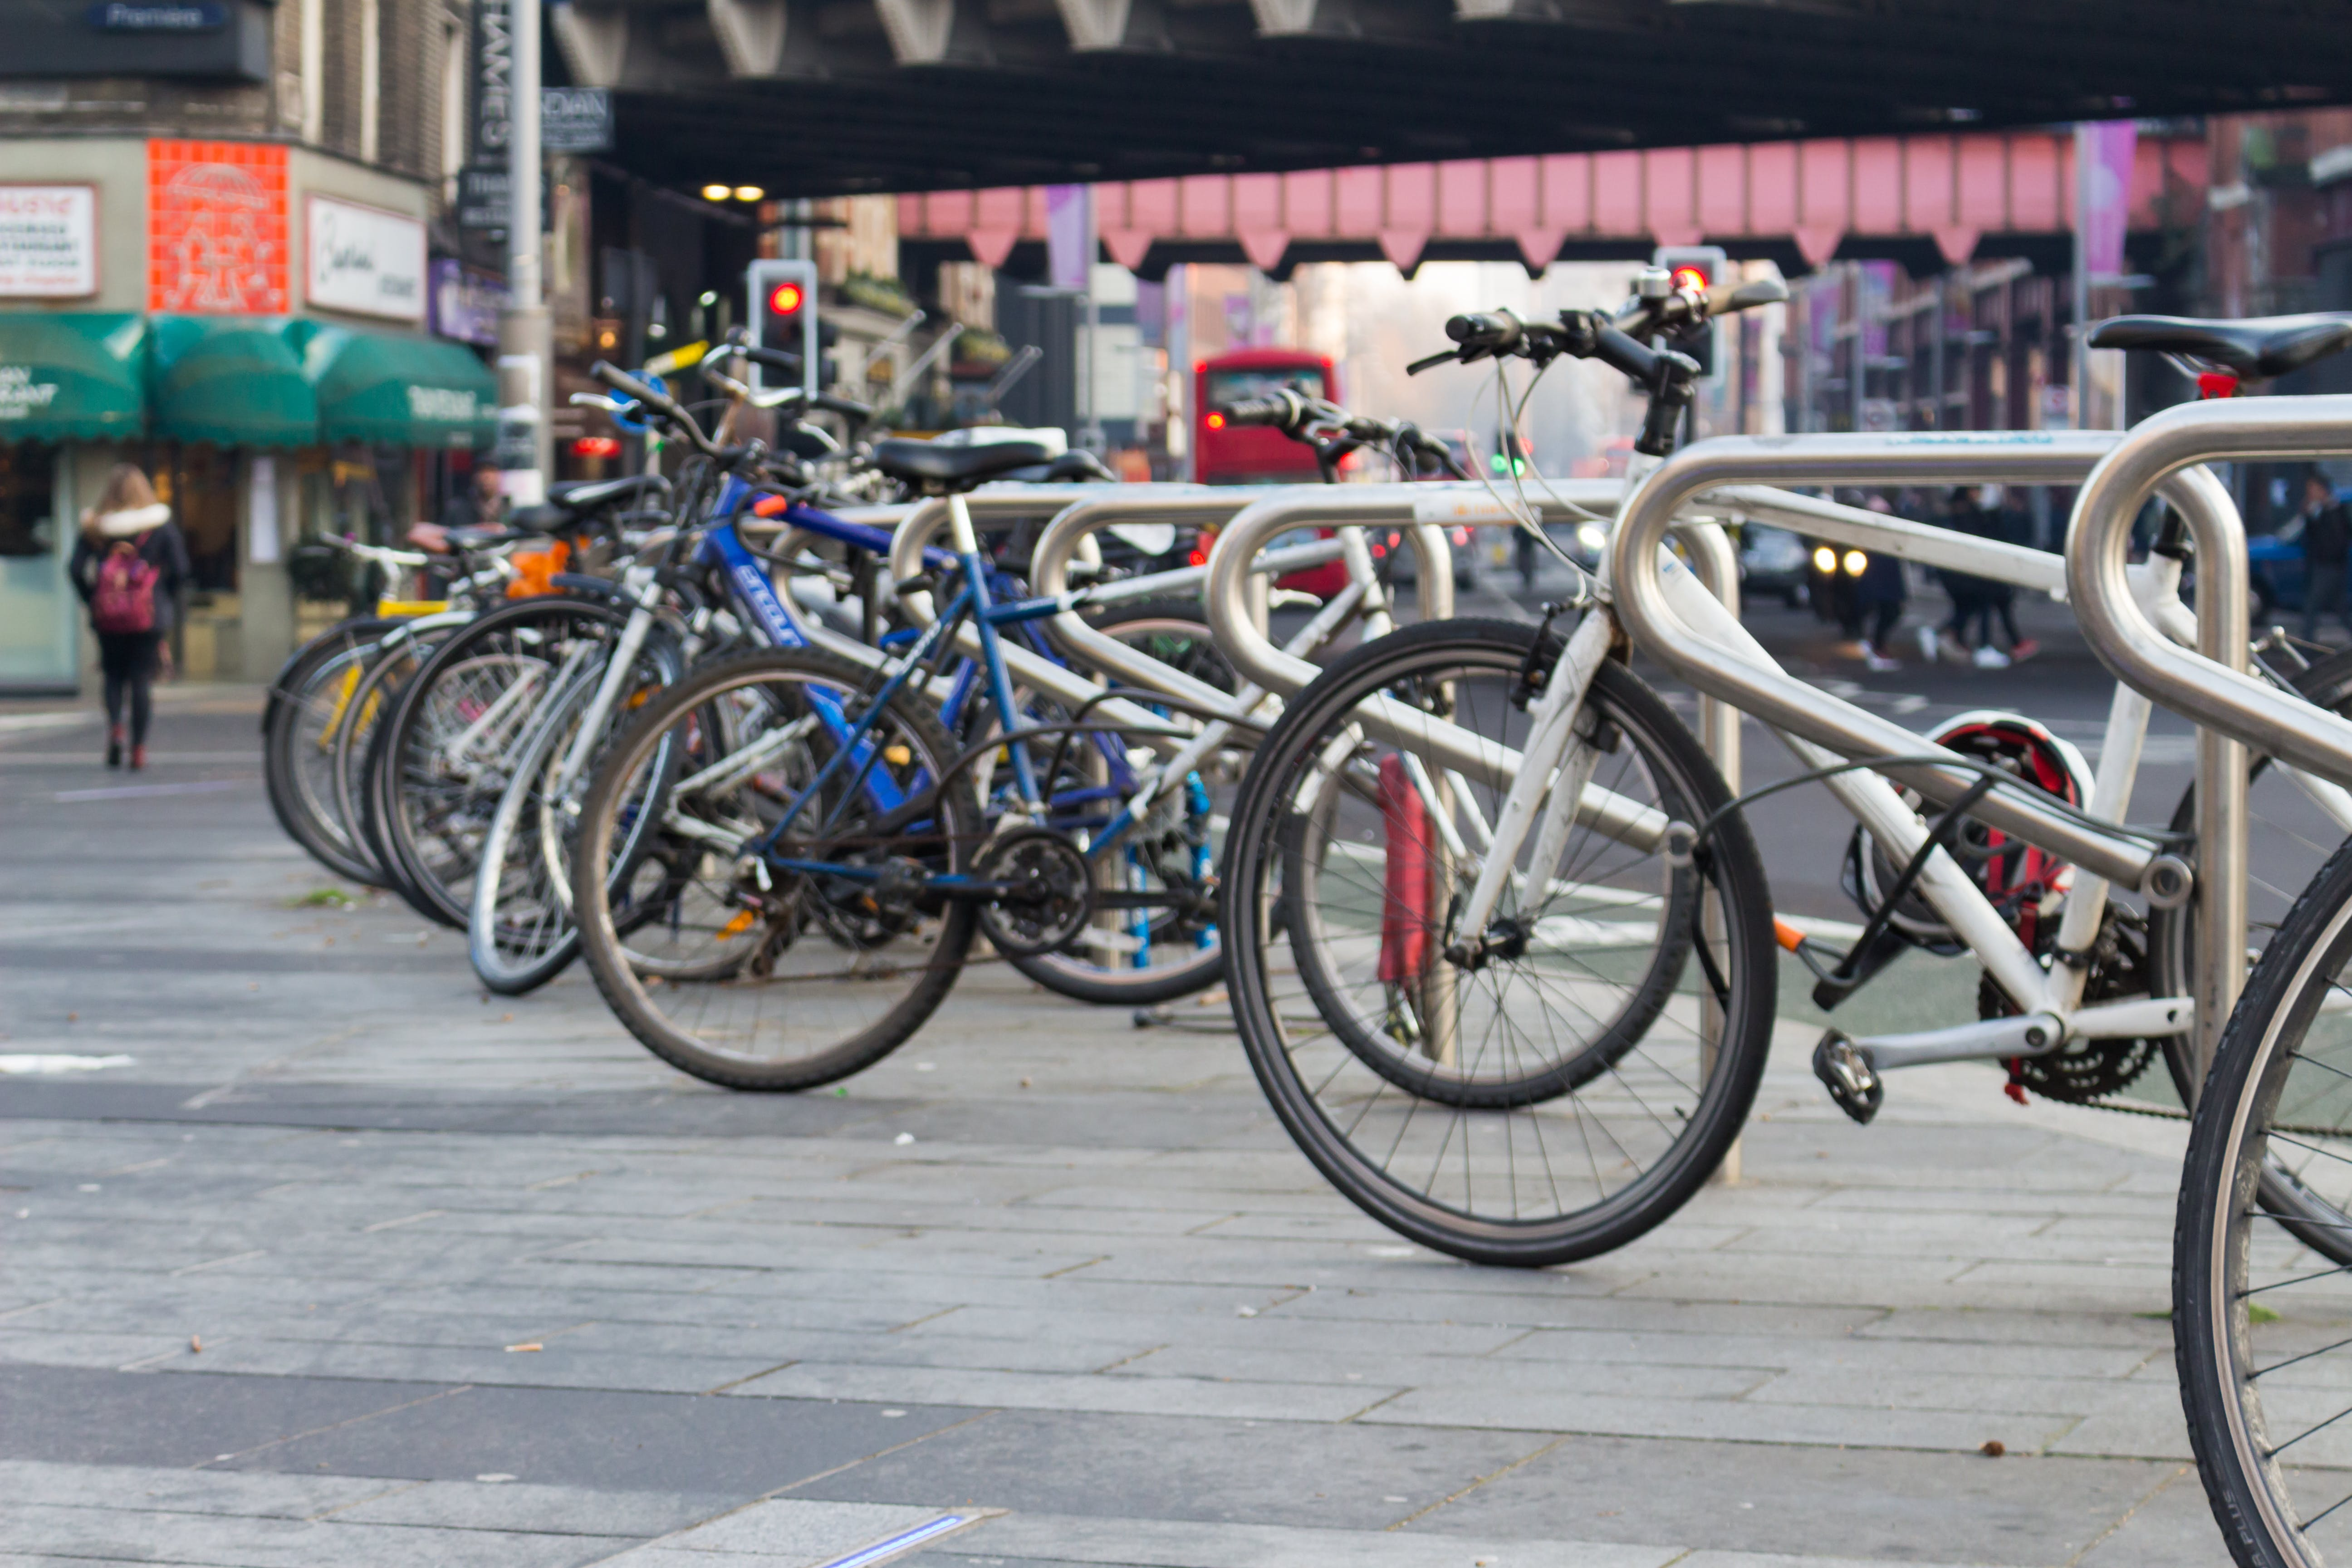 bicycle parking, bicycles, bikes